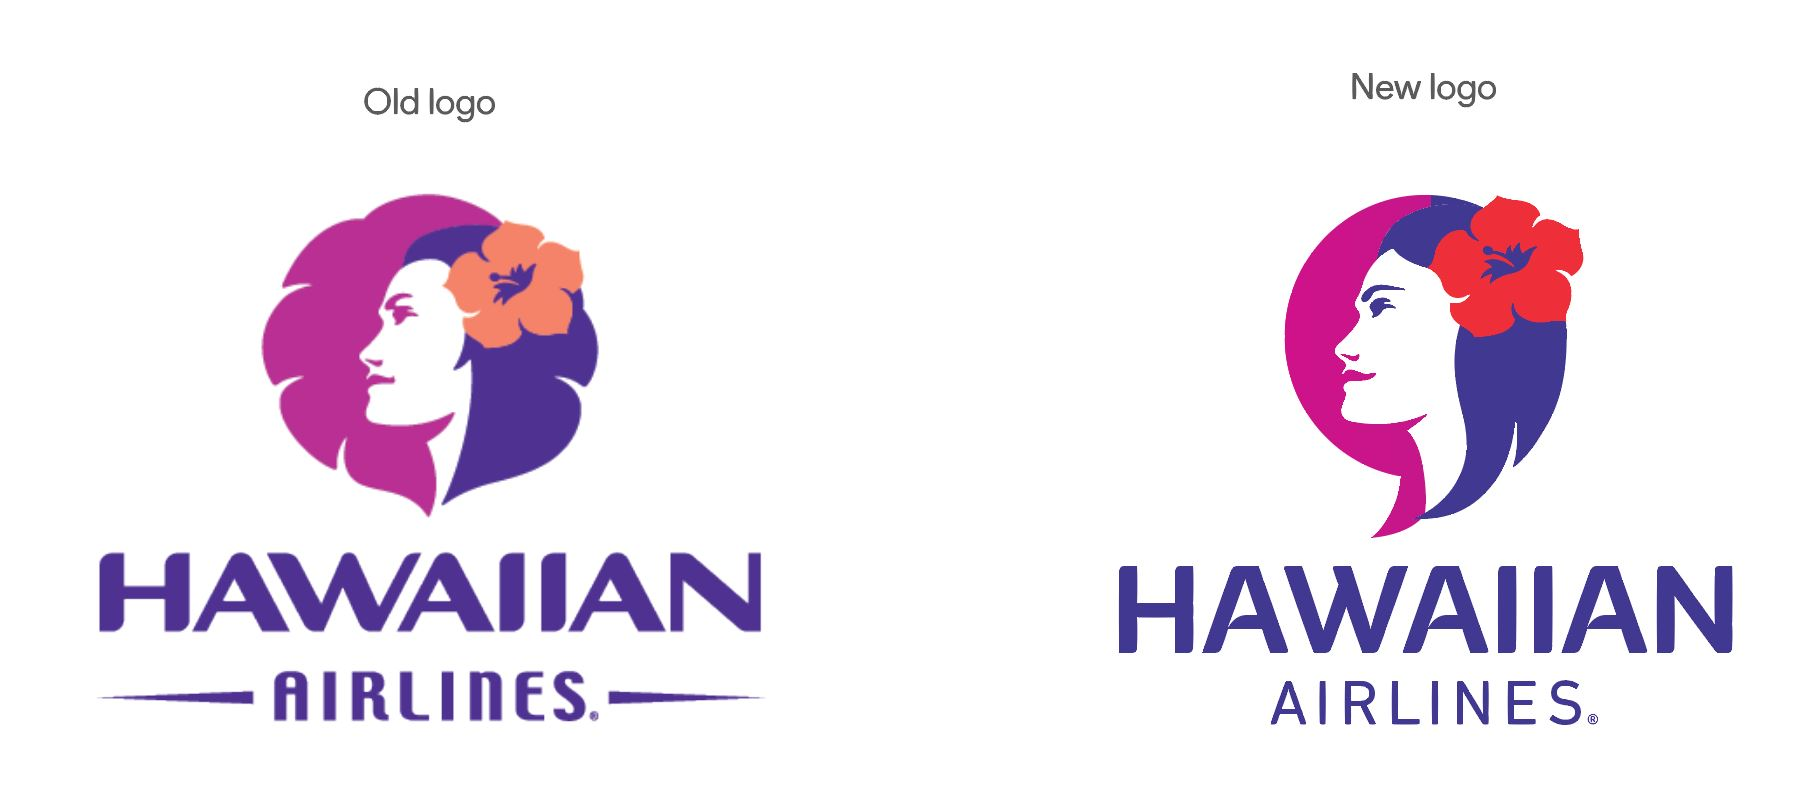 Hawaiian Airlines logo old and new